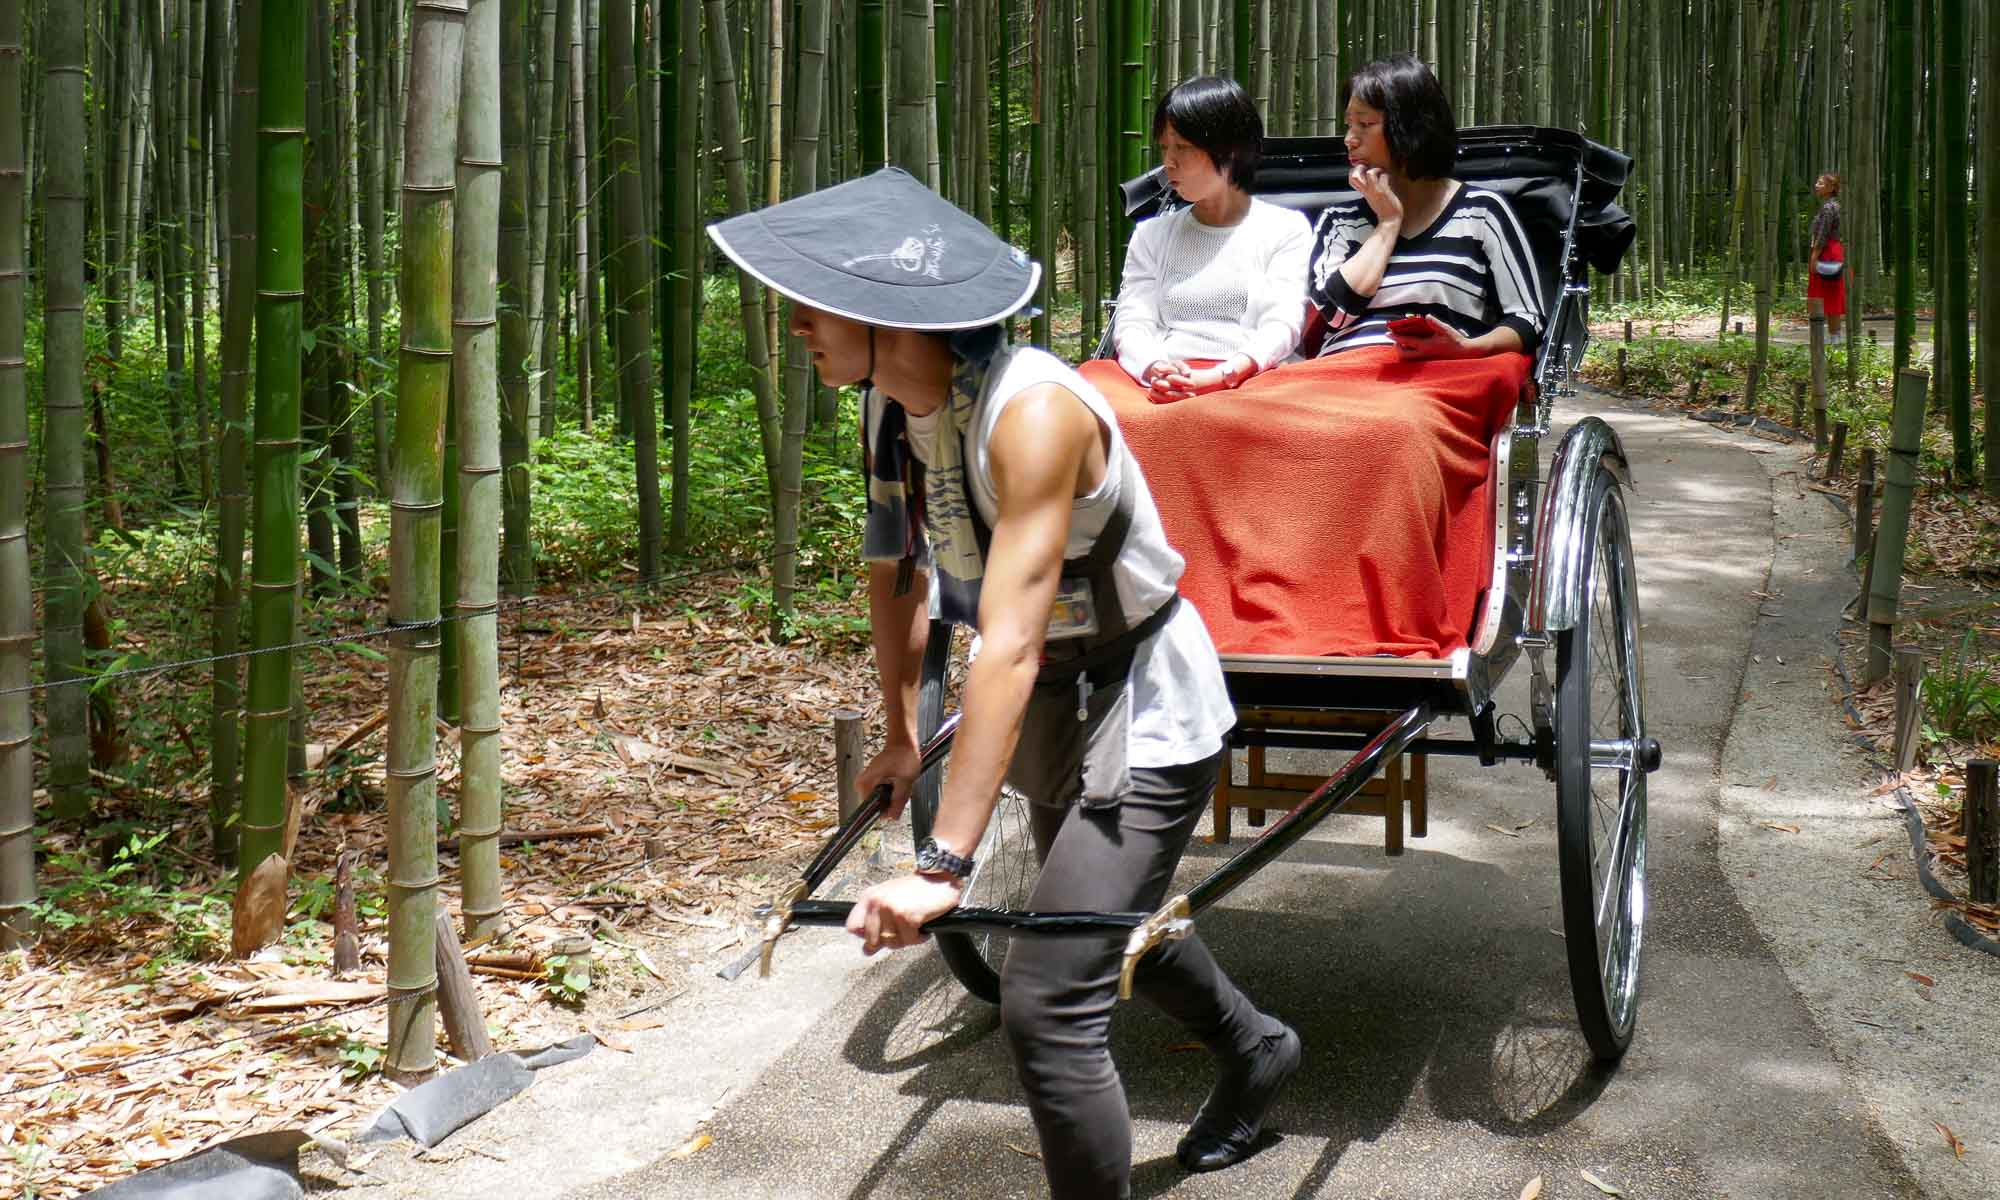 A pulled rickshaw in the forest